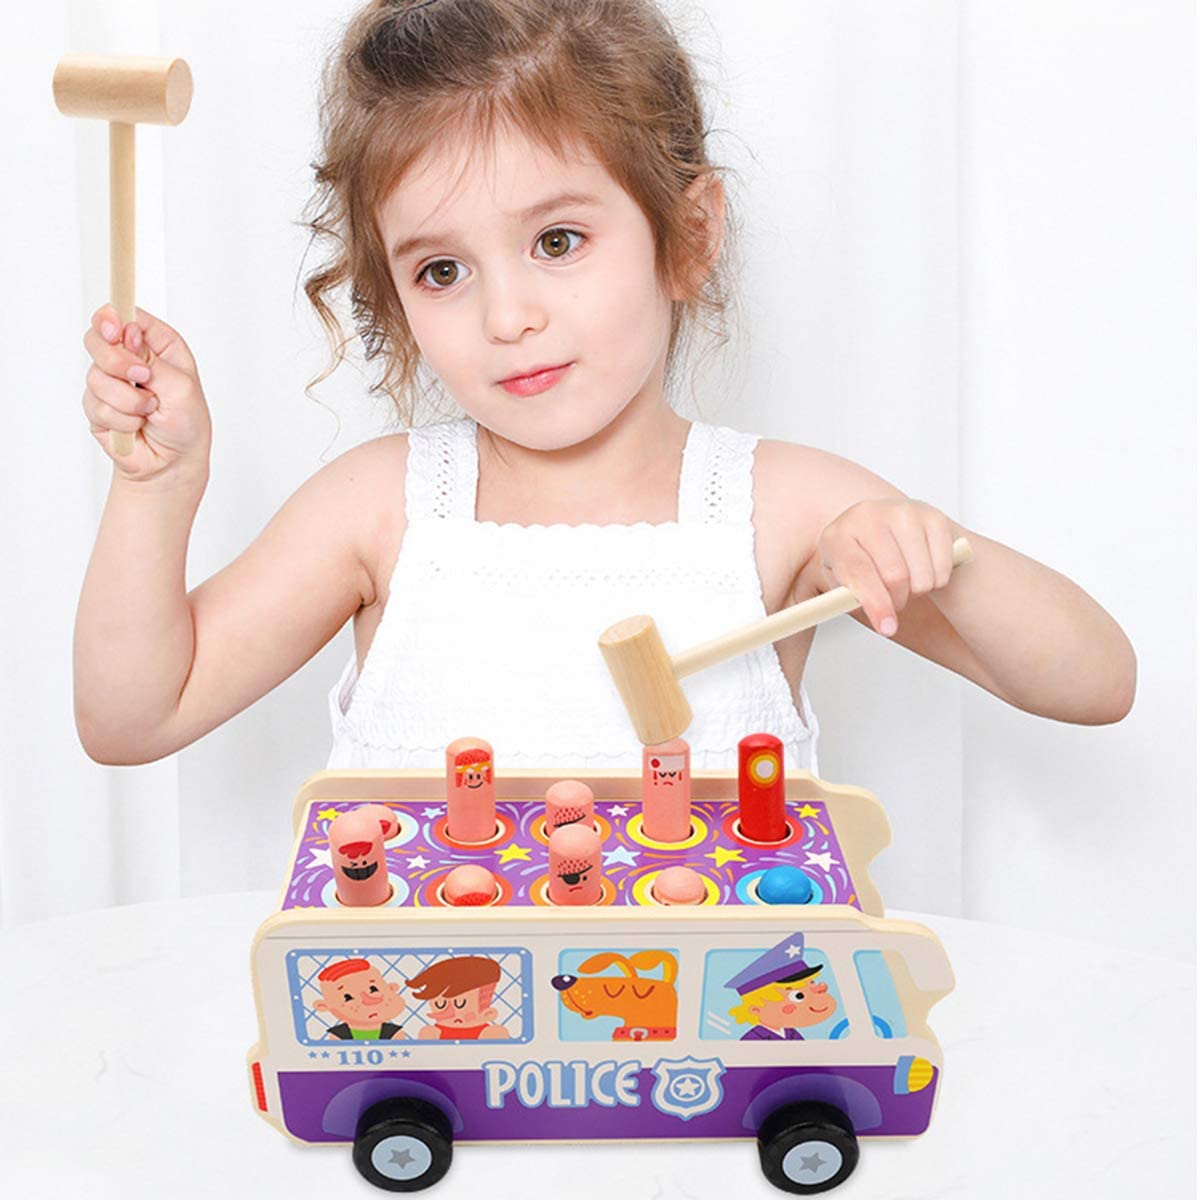 KAILUN Wooden Hammer Toys for 1 2 A Old Year 3 in Along Max 49% OFF Jacksonville Mall Pull